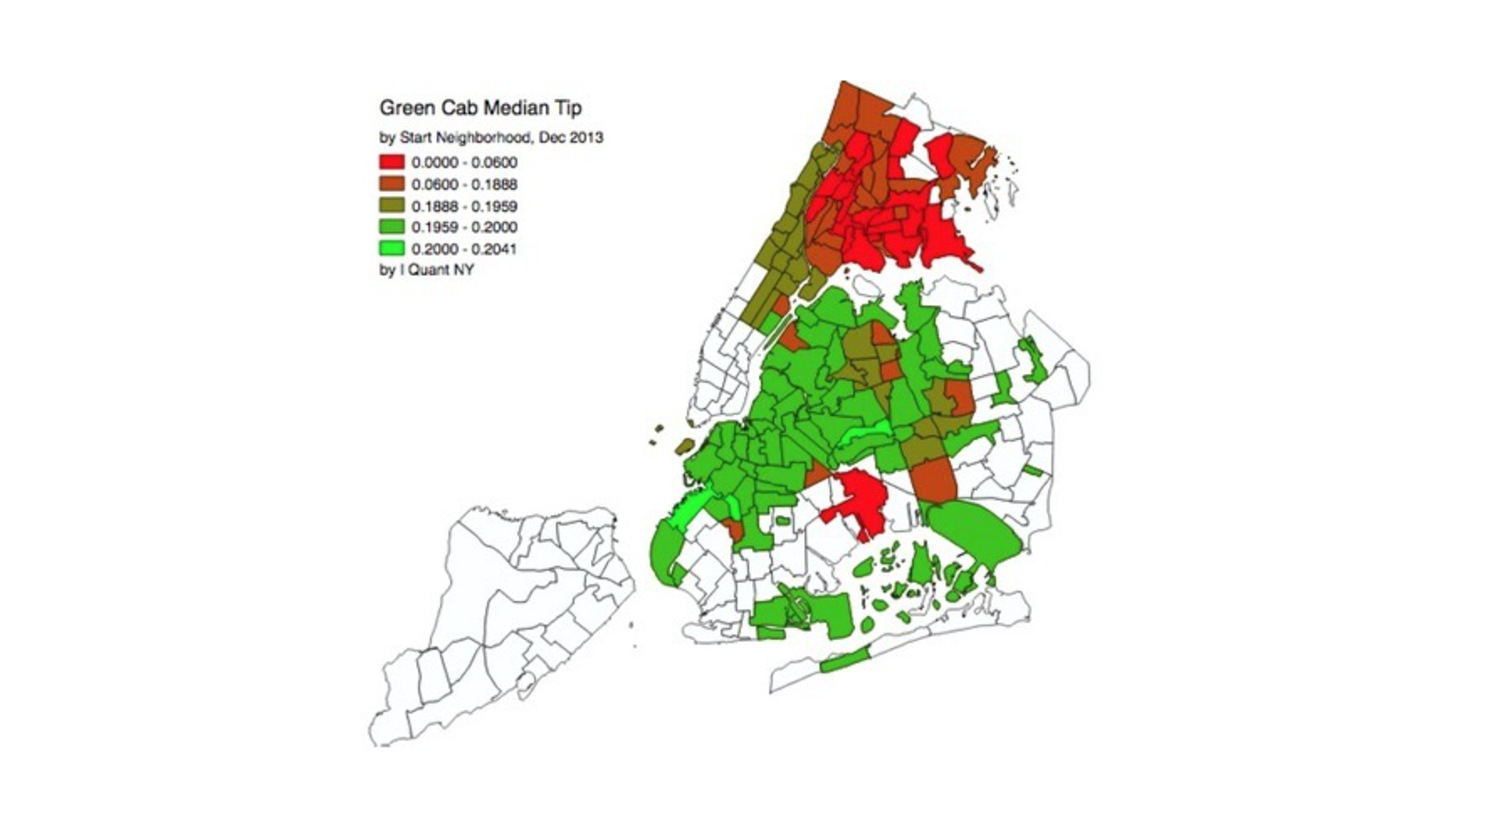 Brooklyn Leads, Bronx Lags in Green Cab Tipping Rates